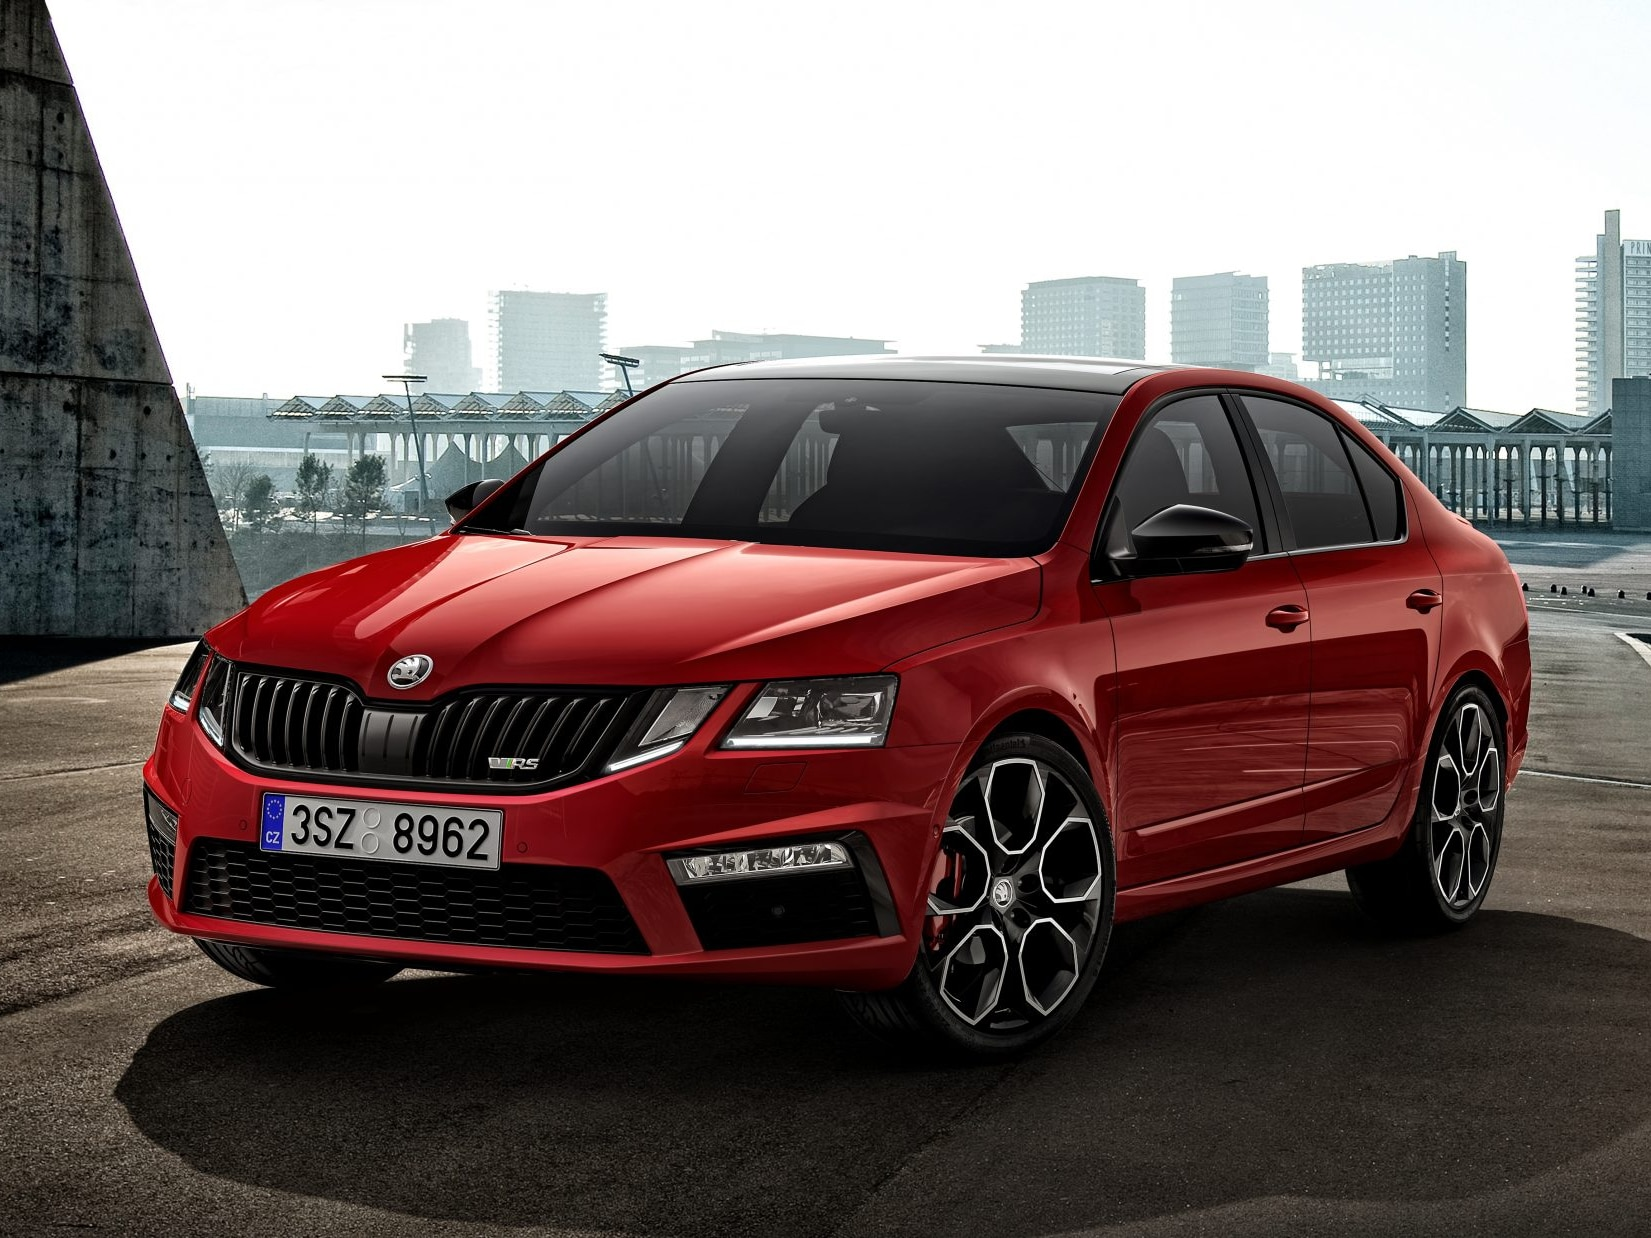 Skoda Octavia Rs245 To Launch In India Soon Will Be Displayed At Auto Expo 2020 Zigwheels